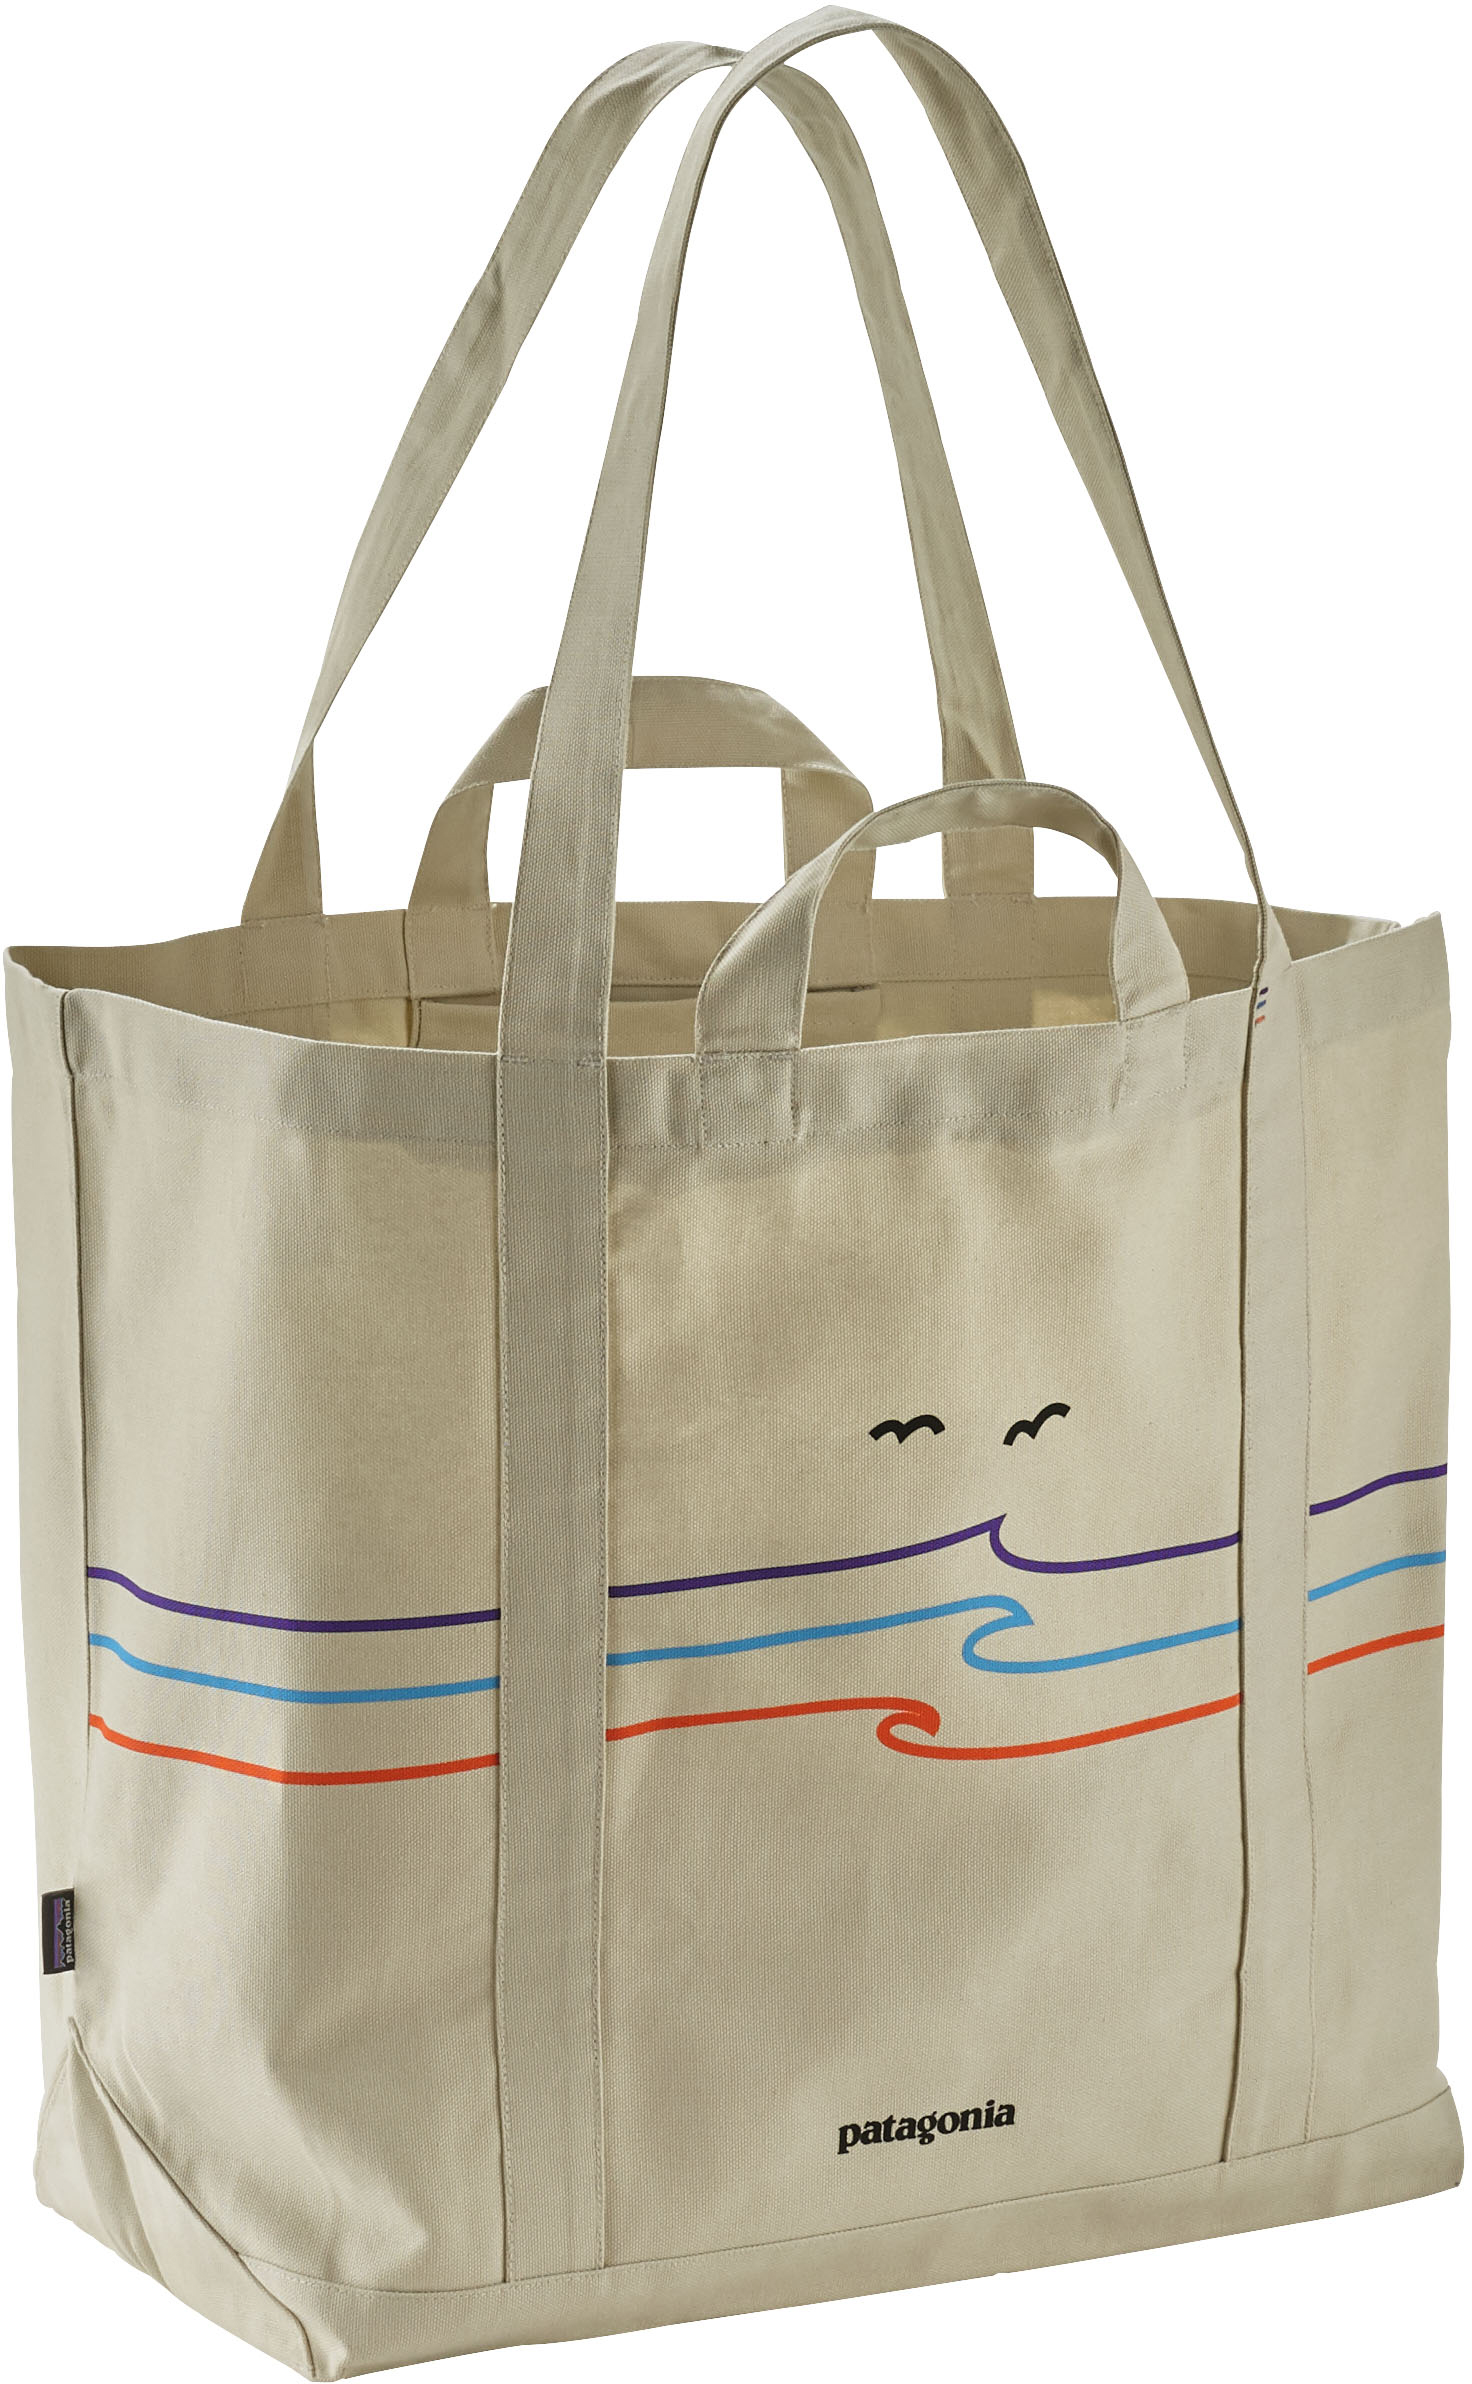 d264e27697 Patagonia All Day Tote